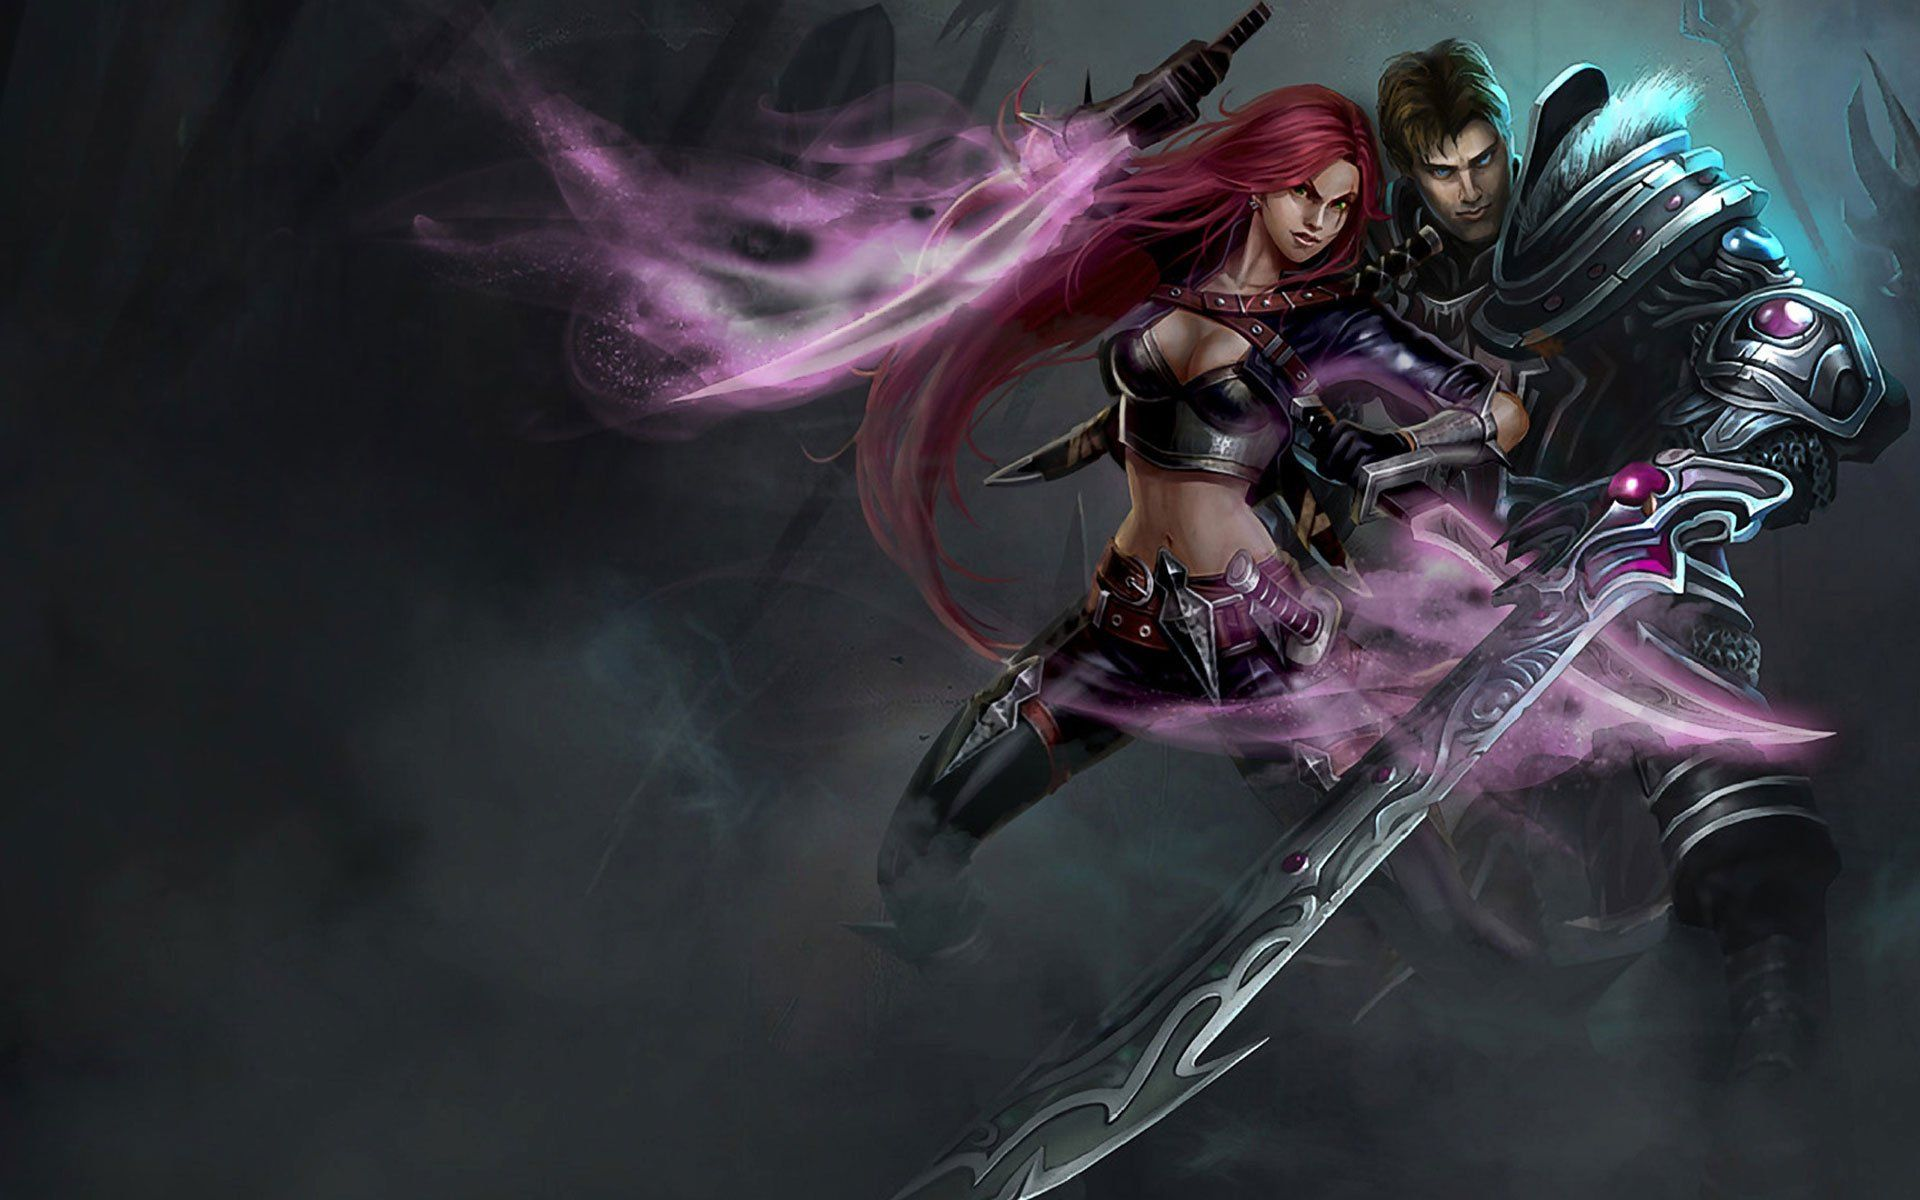 Lol Wallpaper Katarina Garen Image 4k Full Hd Iphone Android